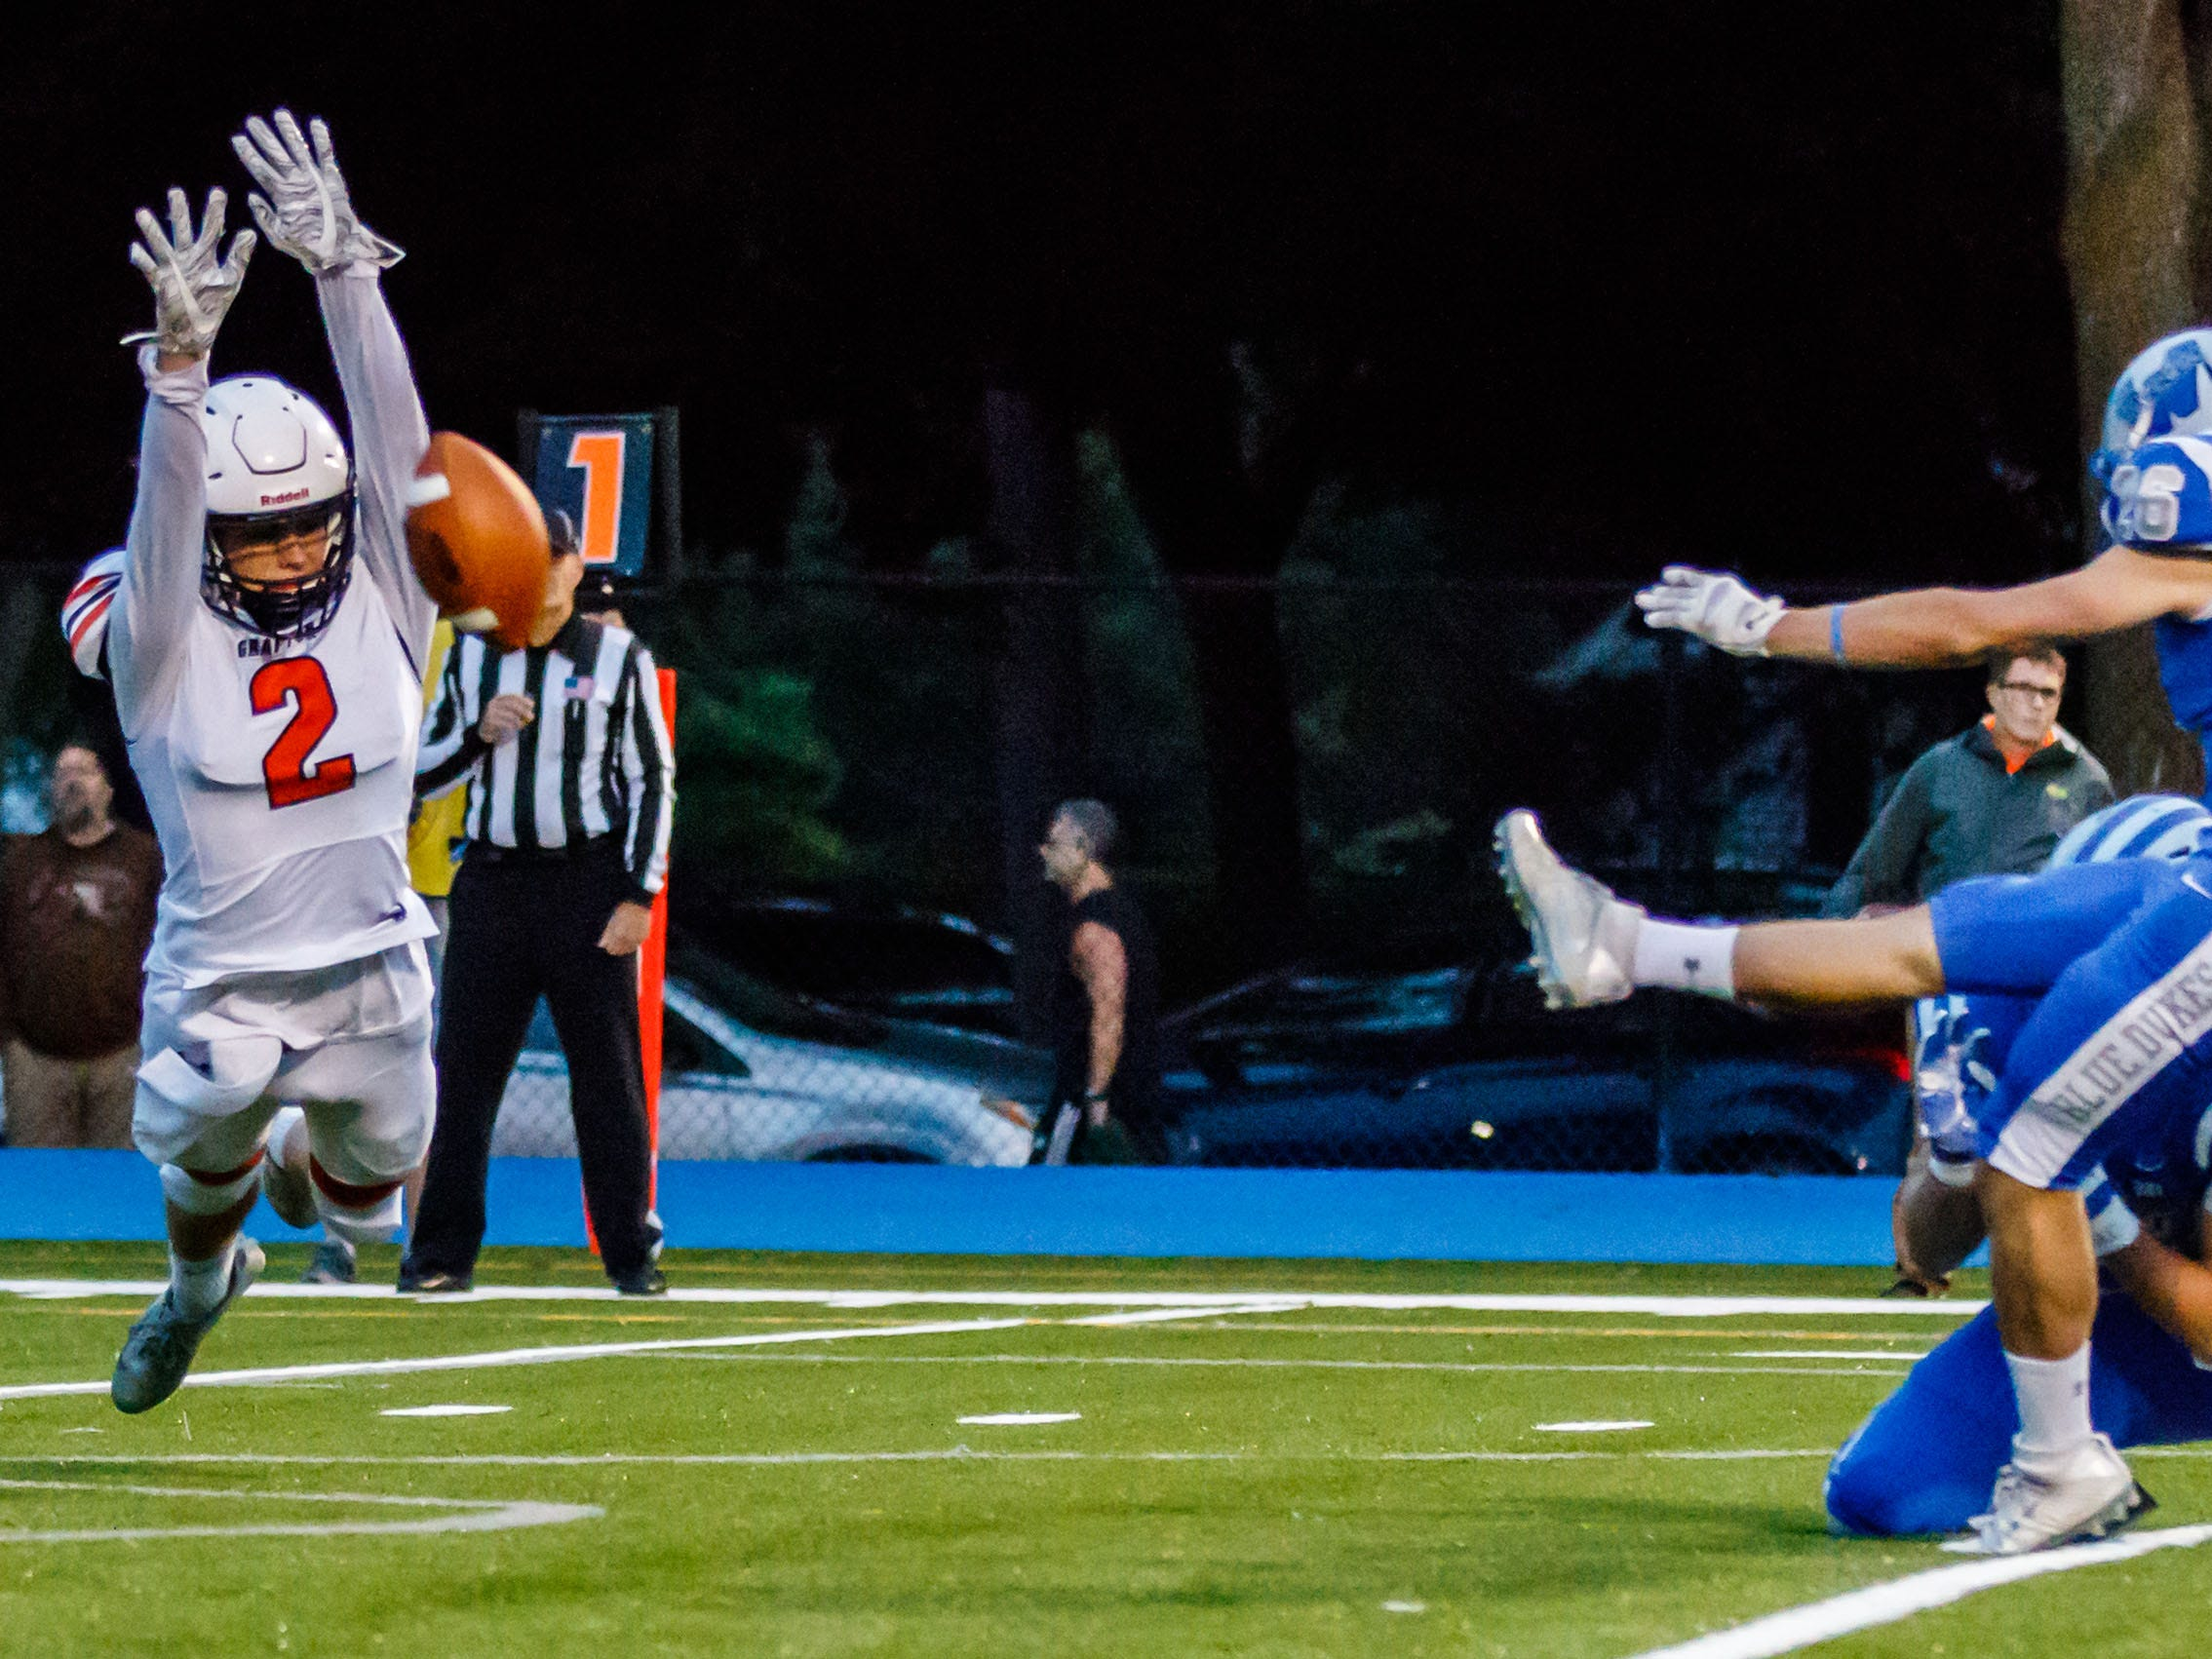 Grafton defensive back Calen Knauer (2) attempts to block a PAT by Whitefish Bay kicker Michael Kauffman (26) during the game at Whitefish Bay on Friday, Sept. 7, 2018.